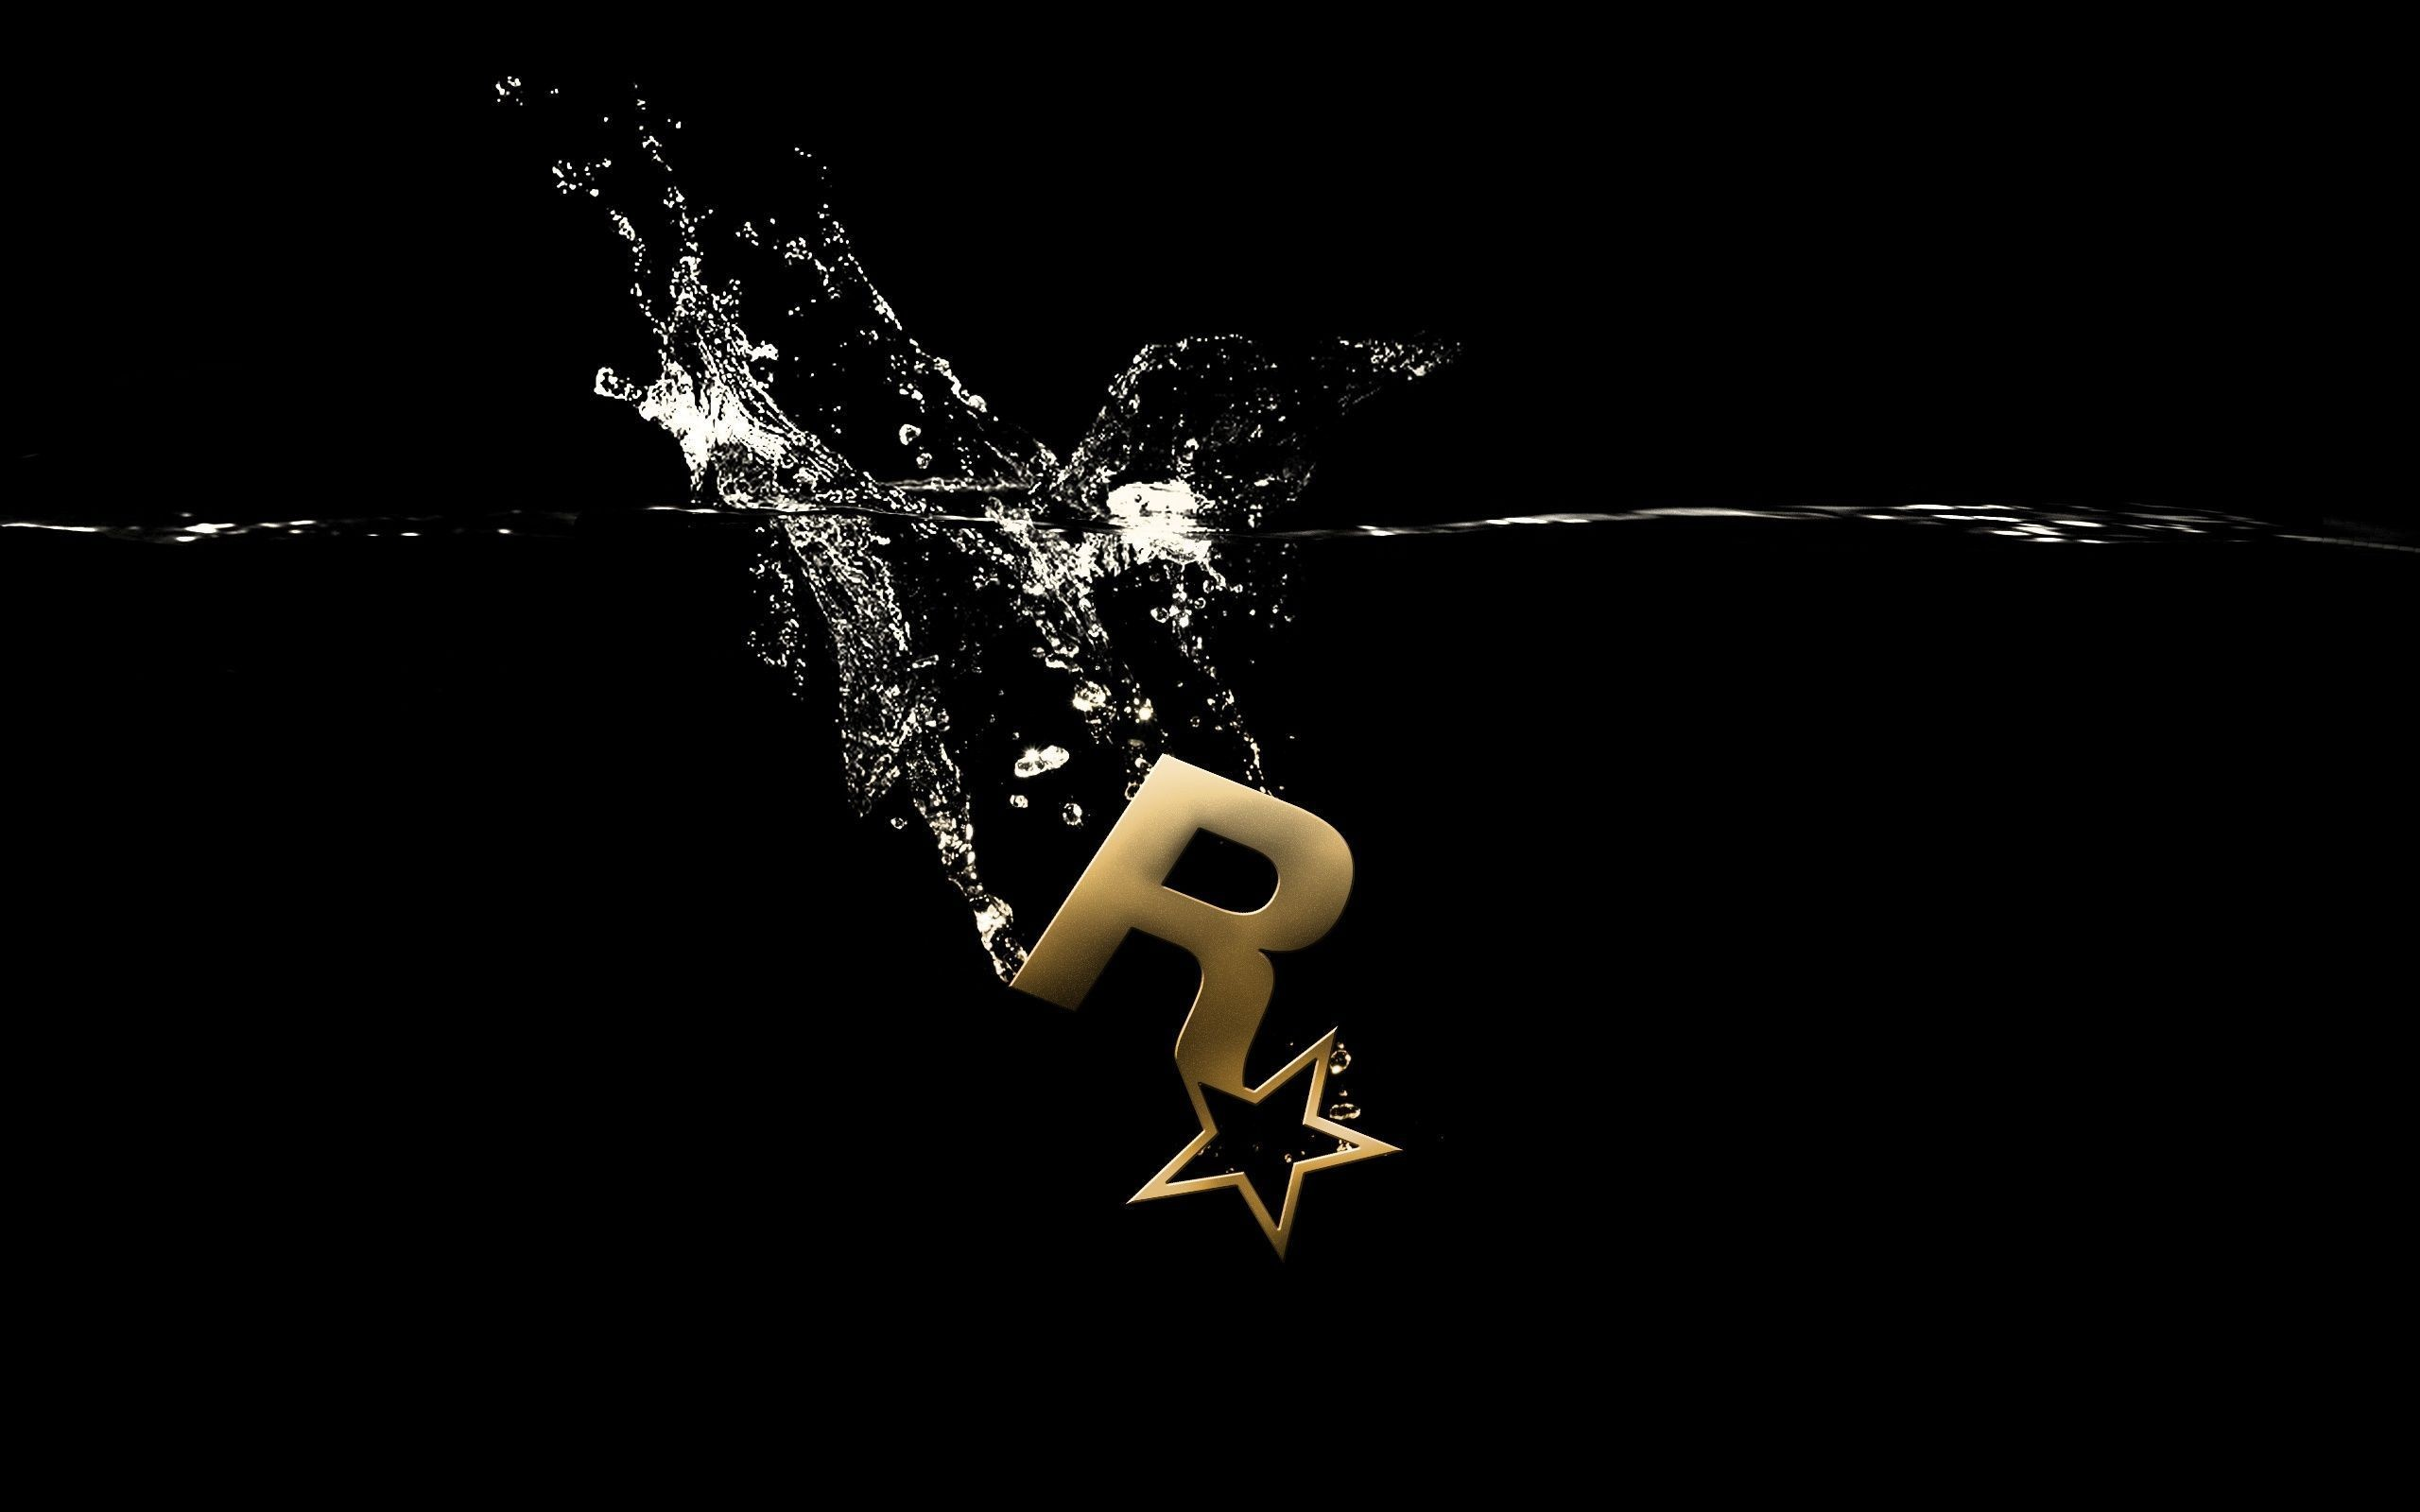 2560x1600 Rockstar Energy Wallpaper 10 - 2560 X 1600